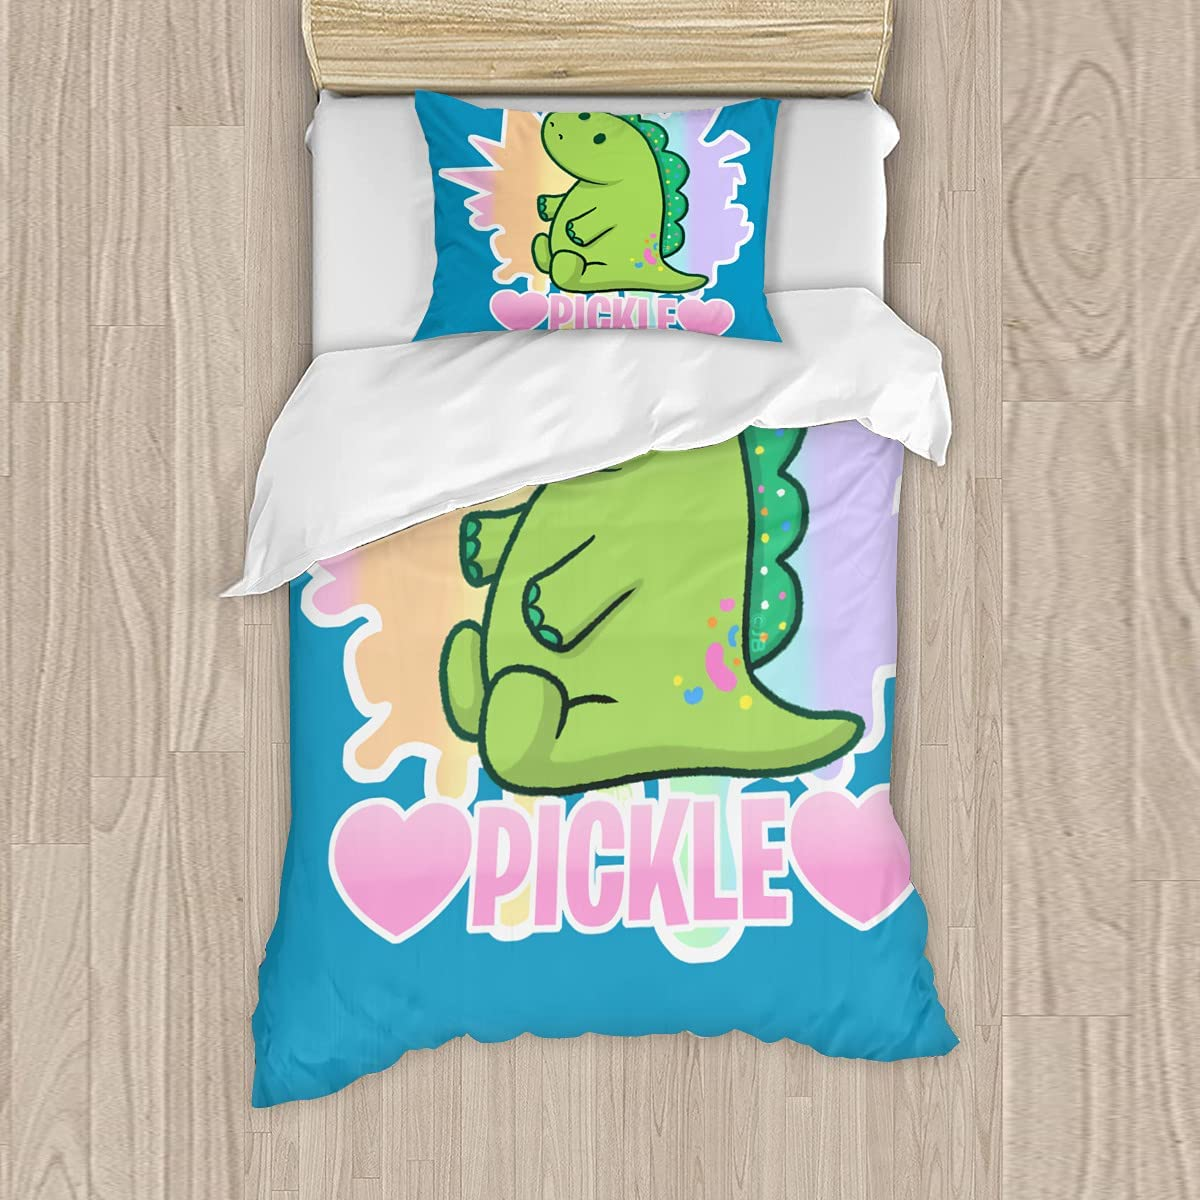 Special Campaign Love Pickle Bedding Luxury goods Set Comforter Duvet for Cover Colorful